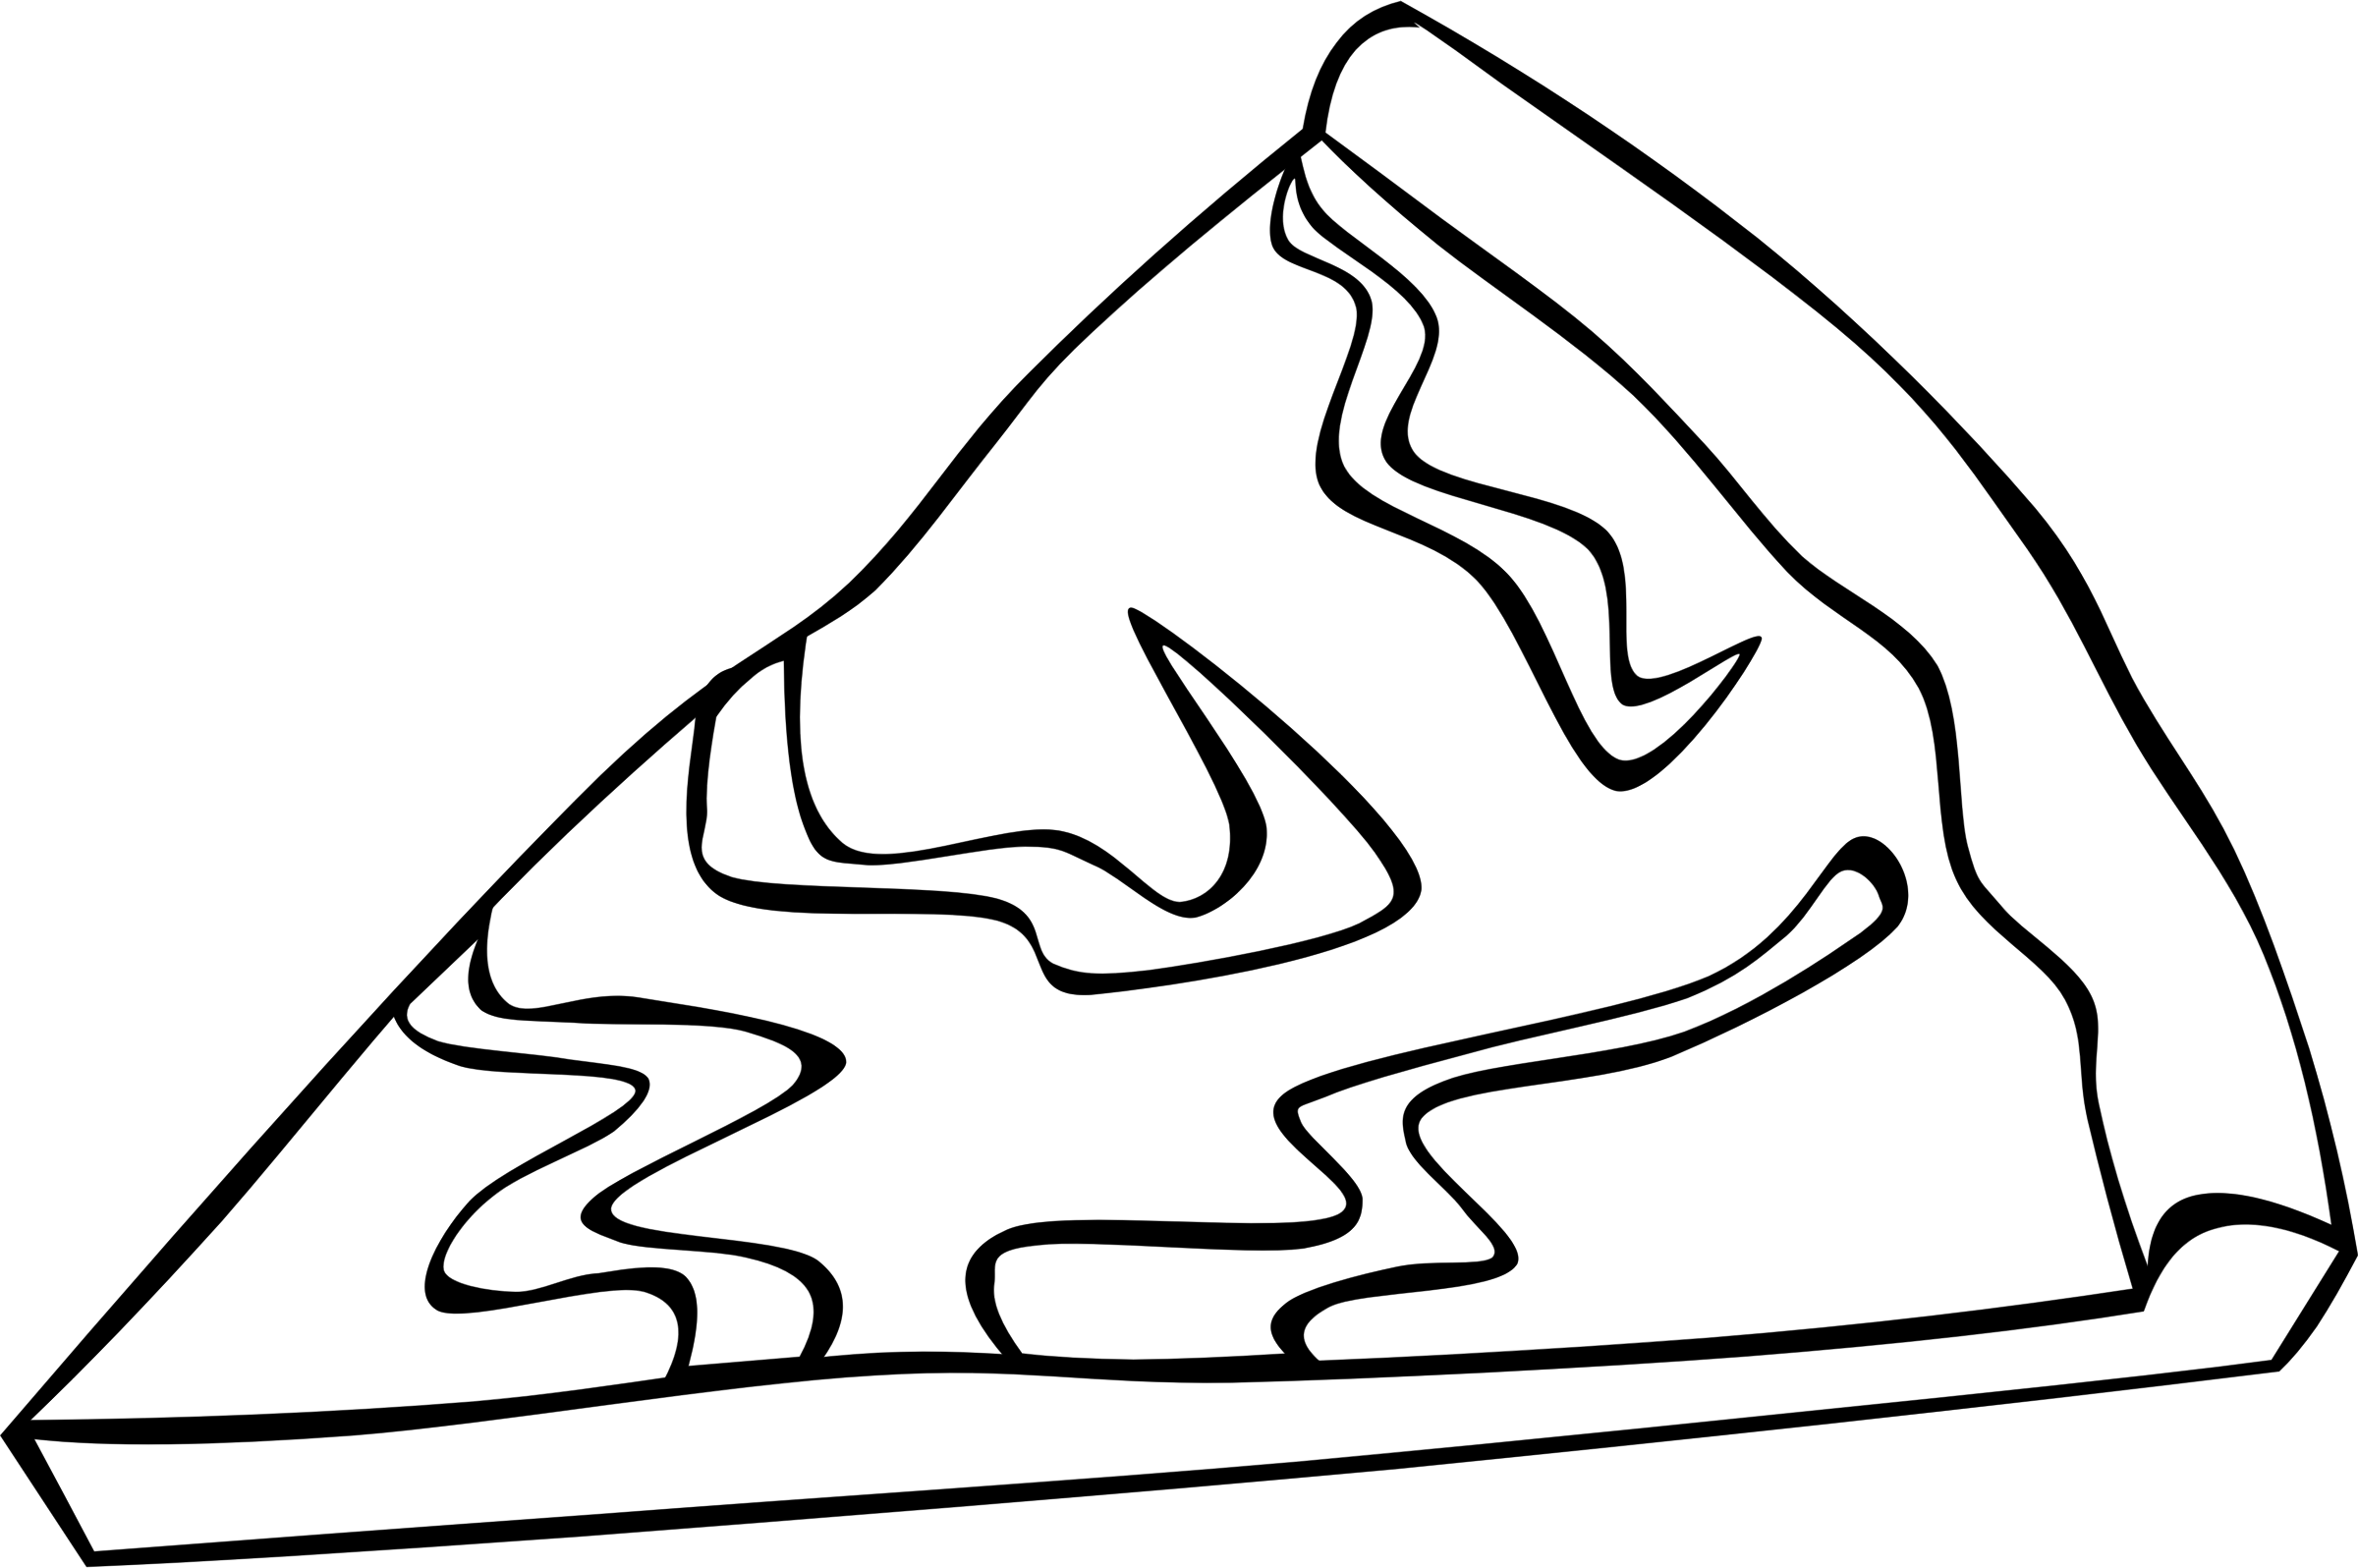 pizza clipart black and white